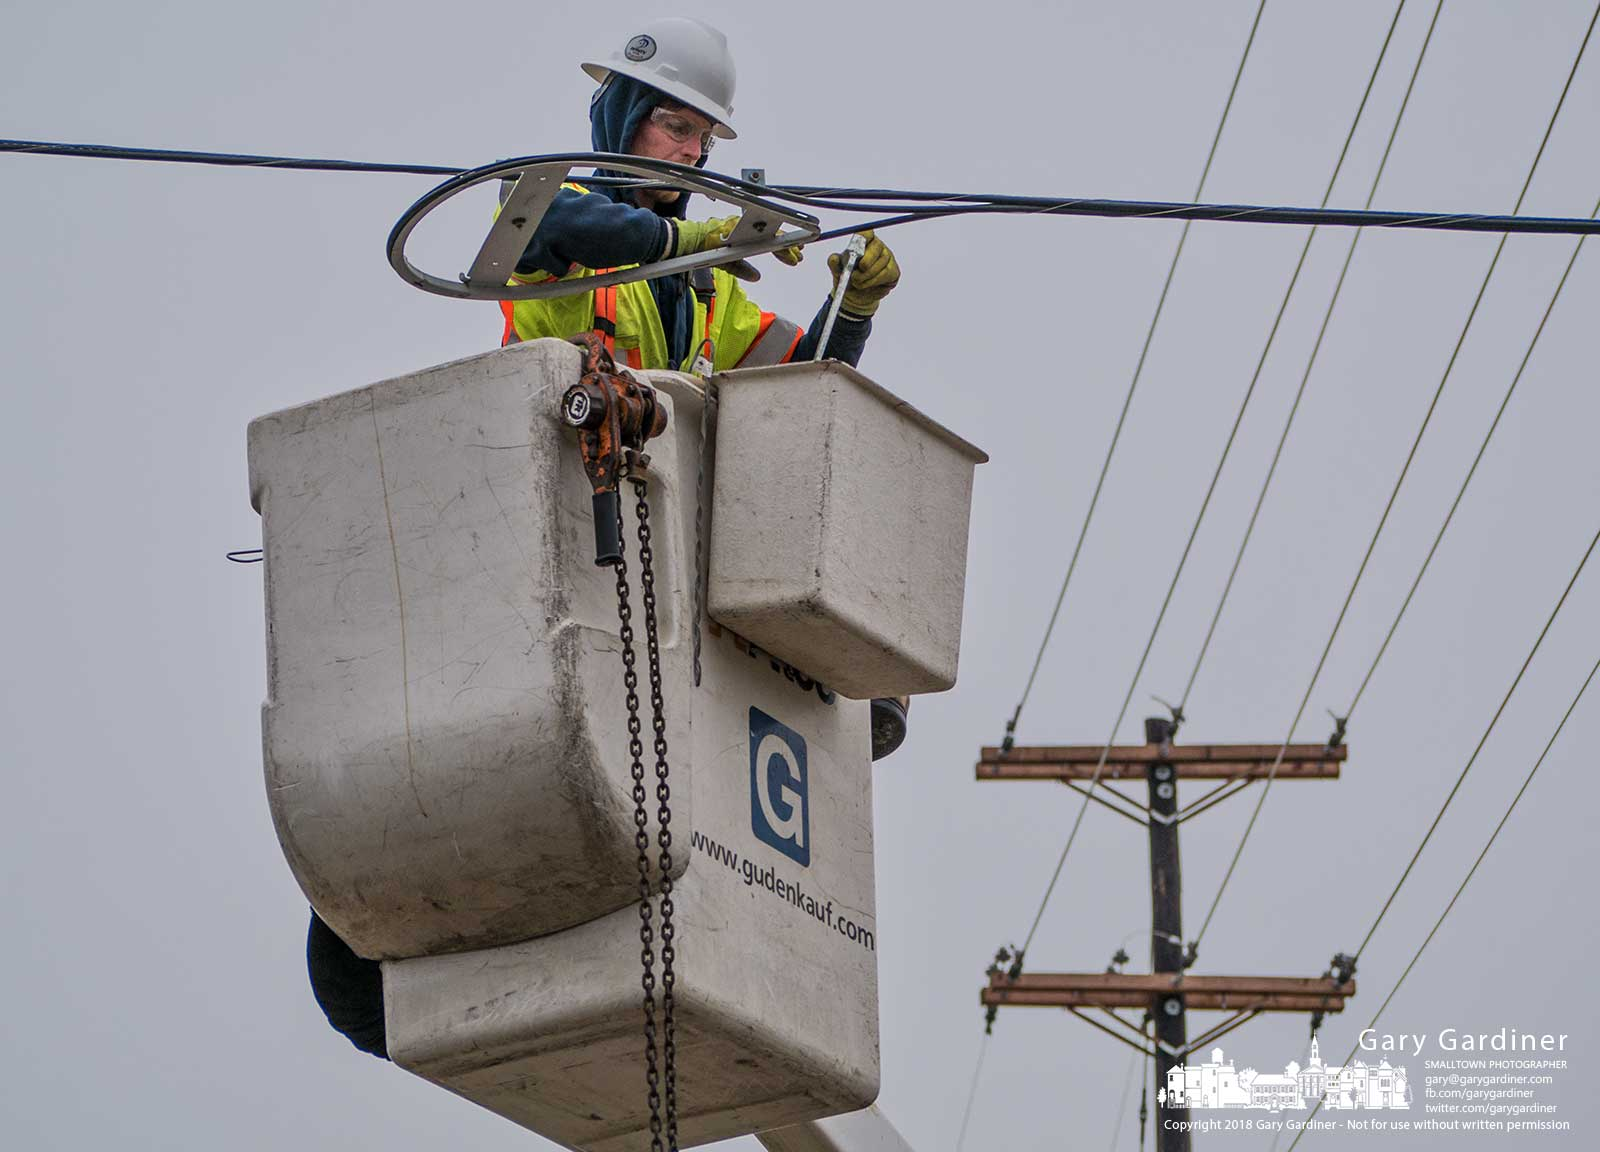 A linesman clears away sections of cabling attached to old utility poles at Schrock and Cleveland where the intersection and roadway are being rebuilt to make way for more turn lanes and a wider road. My Final Photo for Feb. 1, 2018.